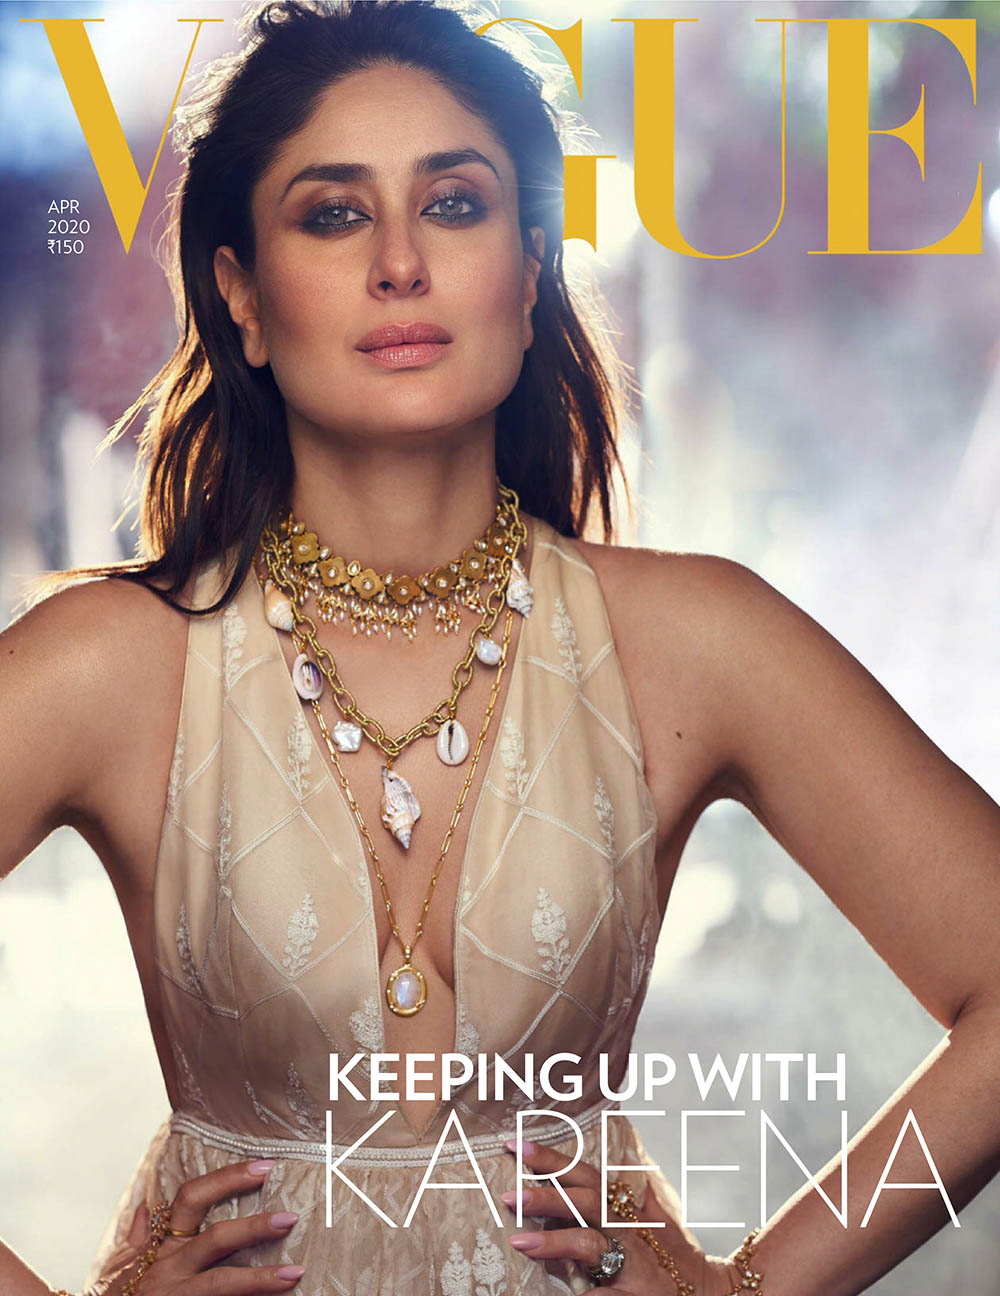 Kareena Kapoor Khan covers Vogue India April 2020 by Tarun Vishwa